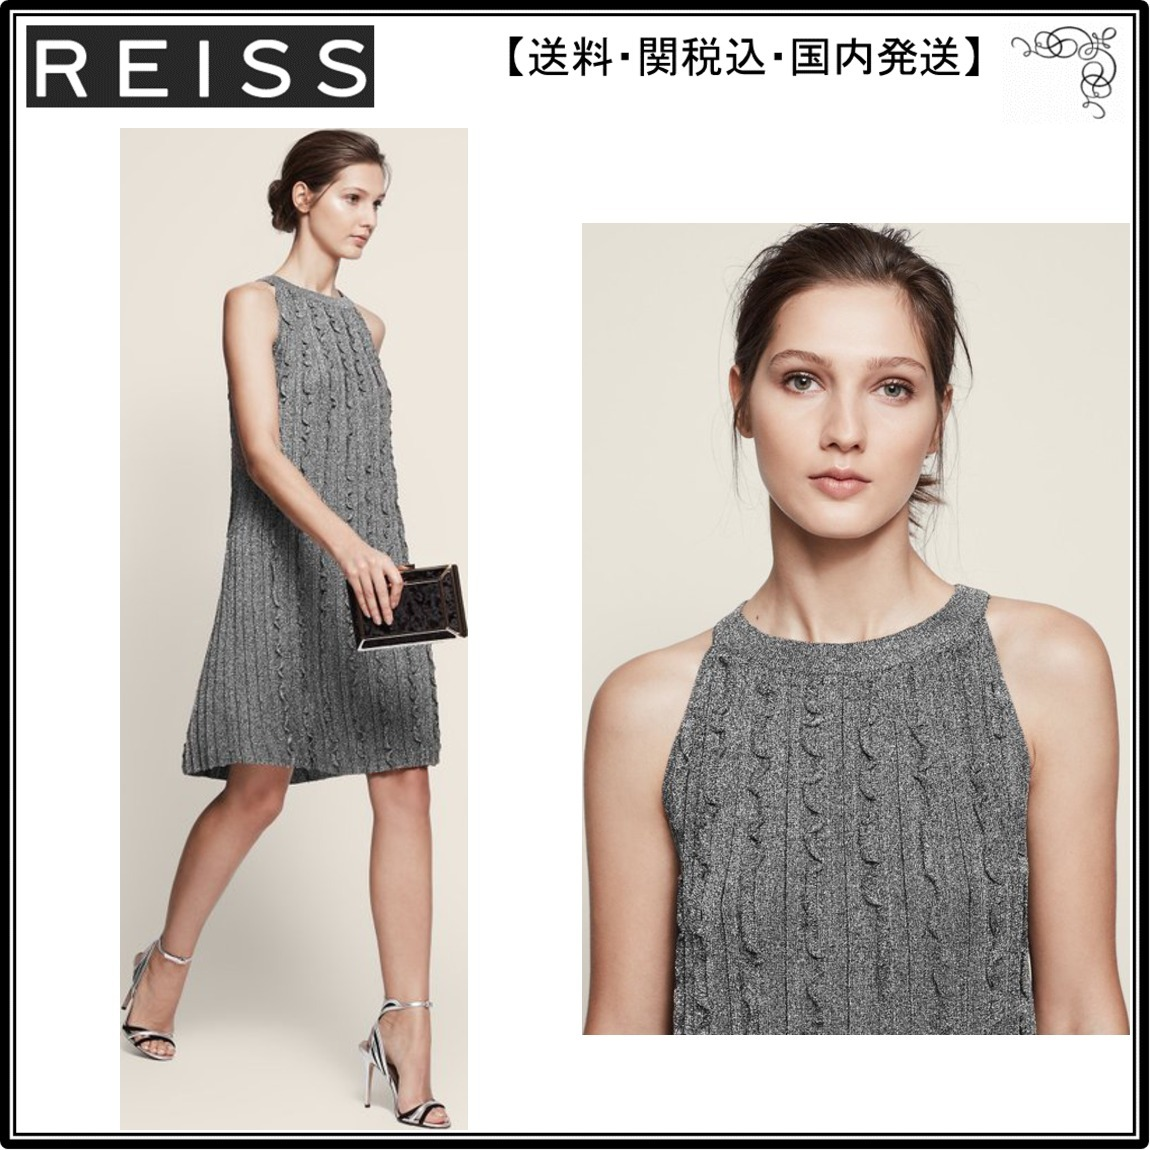 【海外限定】REISS ドレス☆ETHOL METALLIC RUFFLE DRESS